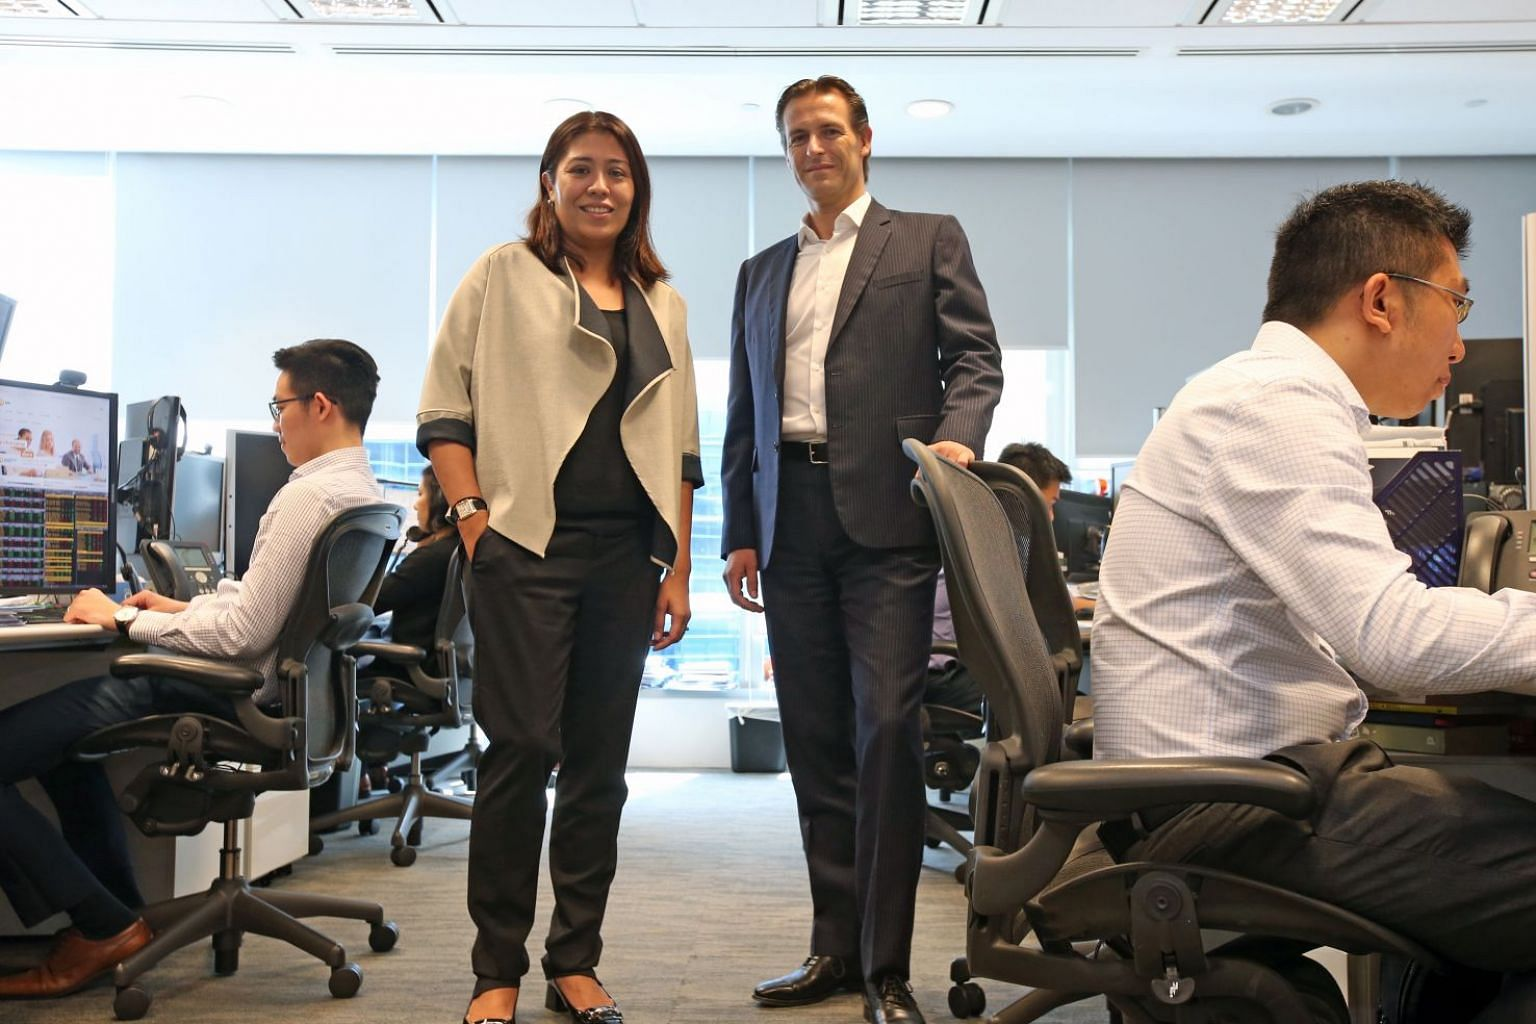 NN Investment Partners executives Gopi Mirchandani and Joep Huntjens say investors should consider Asia and emerging market corporate bonds, given their more attractive valuations, as well as the improving trend of credit fundamentals for the corporate se